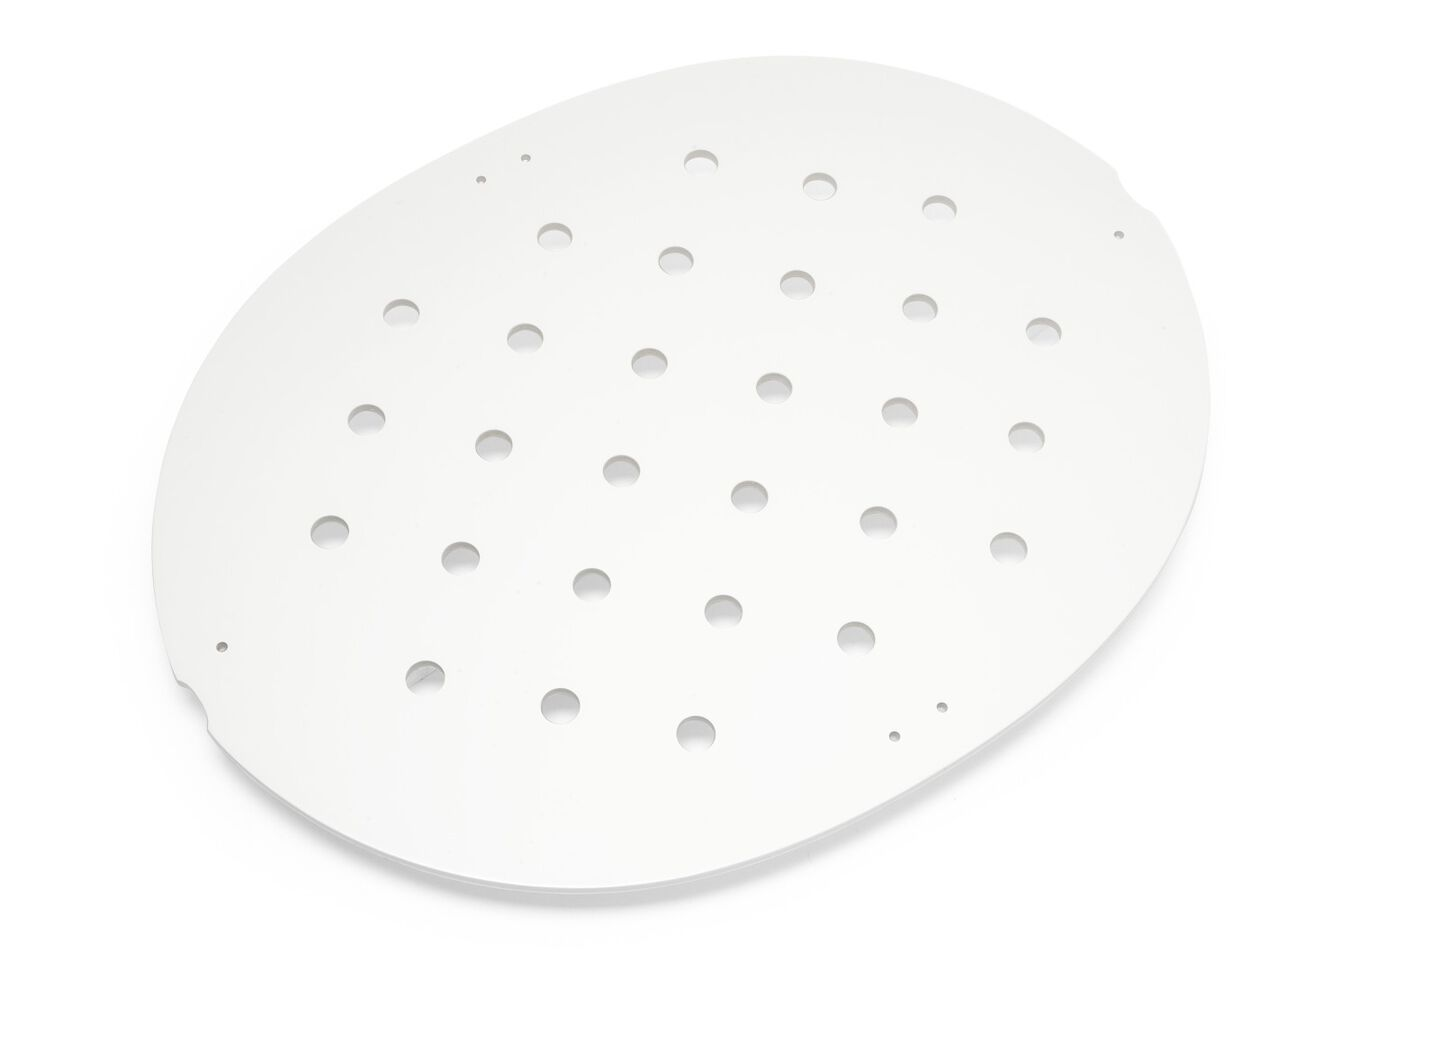 Spare part. 115305 Sleepi Plywood mini White.